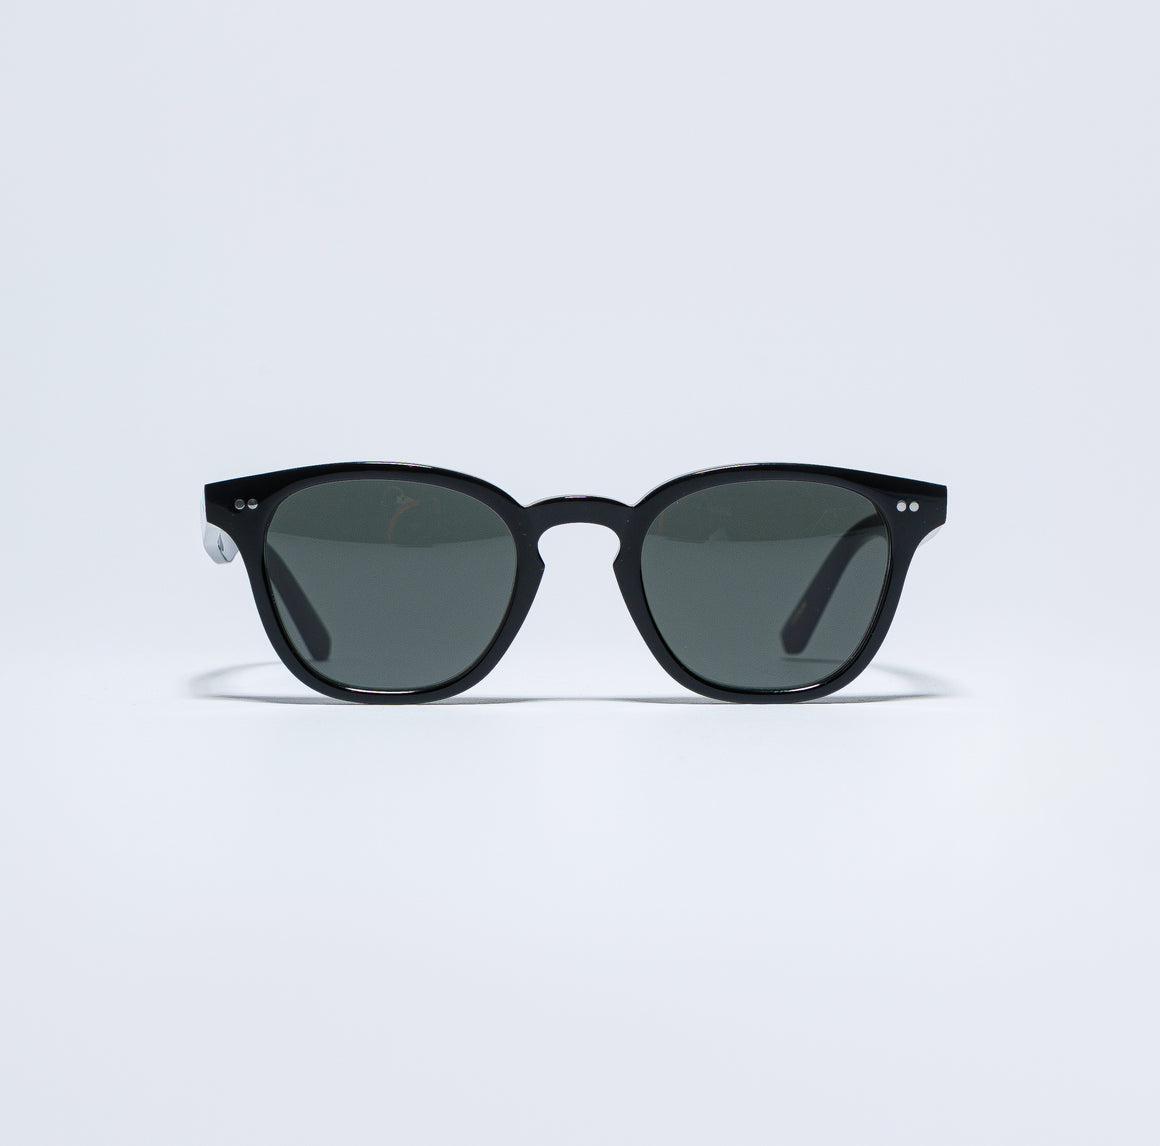 Monokel Eyewear - [title] - Up There